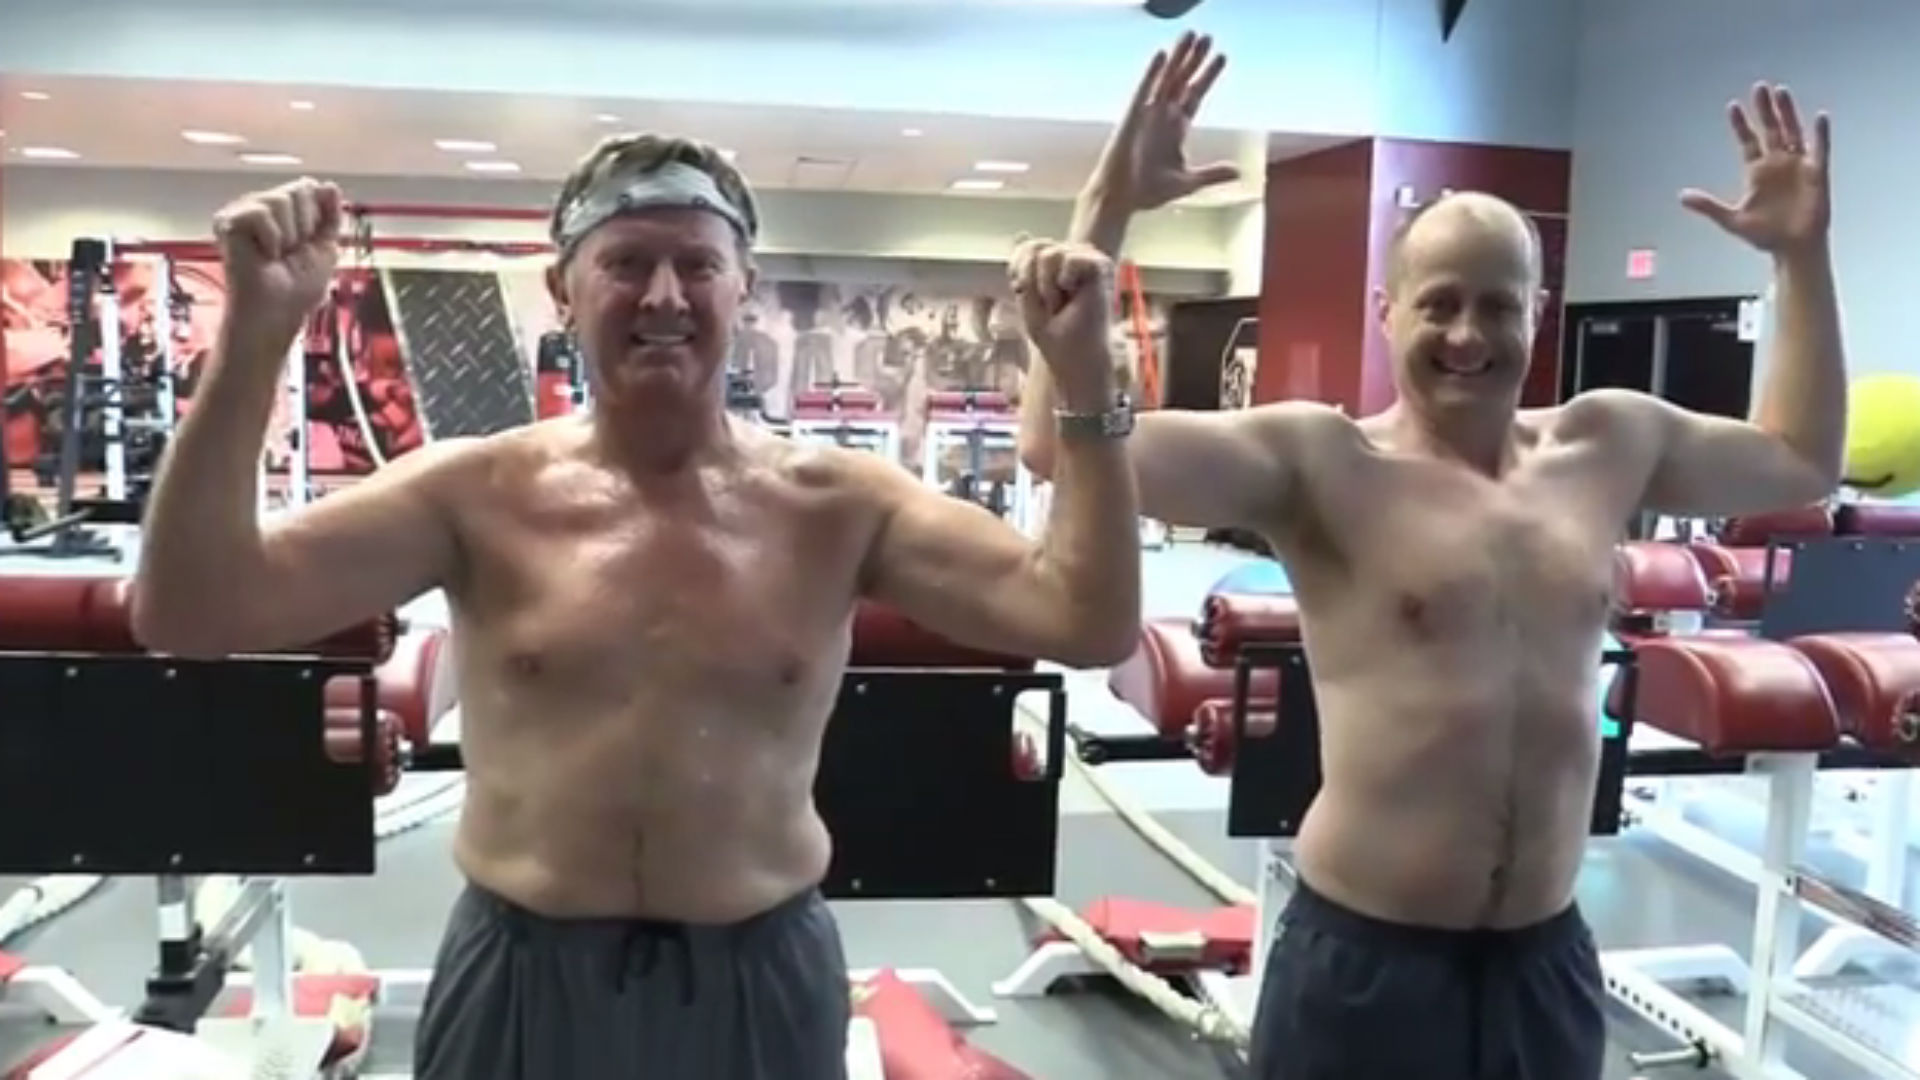 Steve Spurrier's workout will make you feel shame